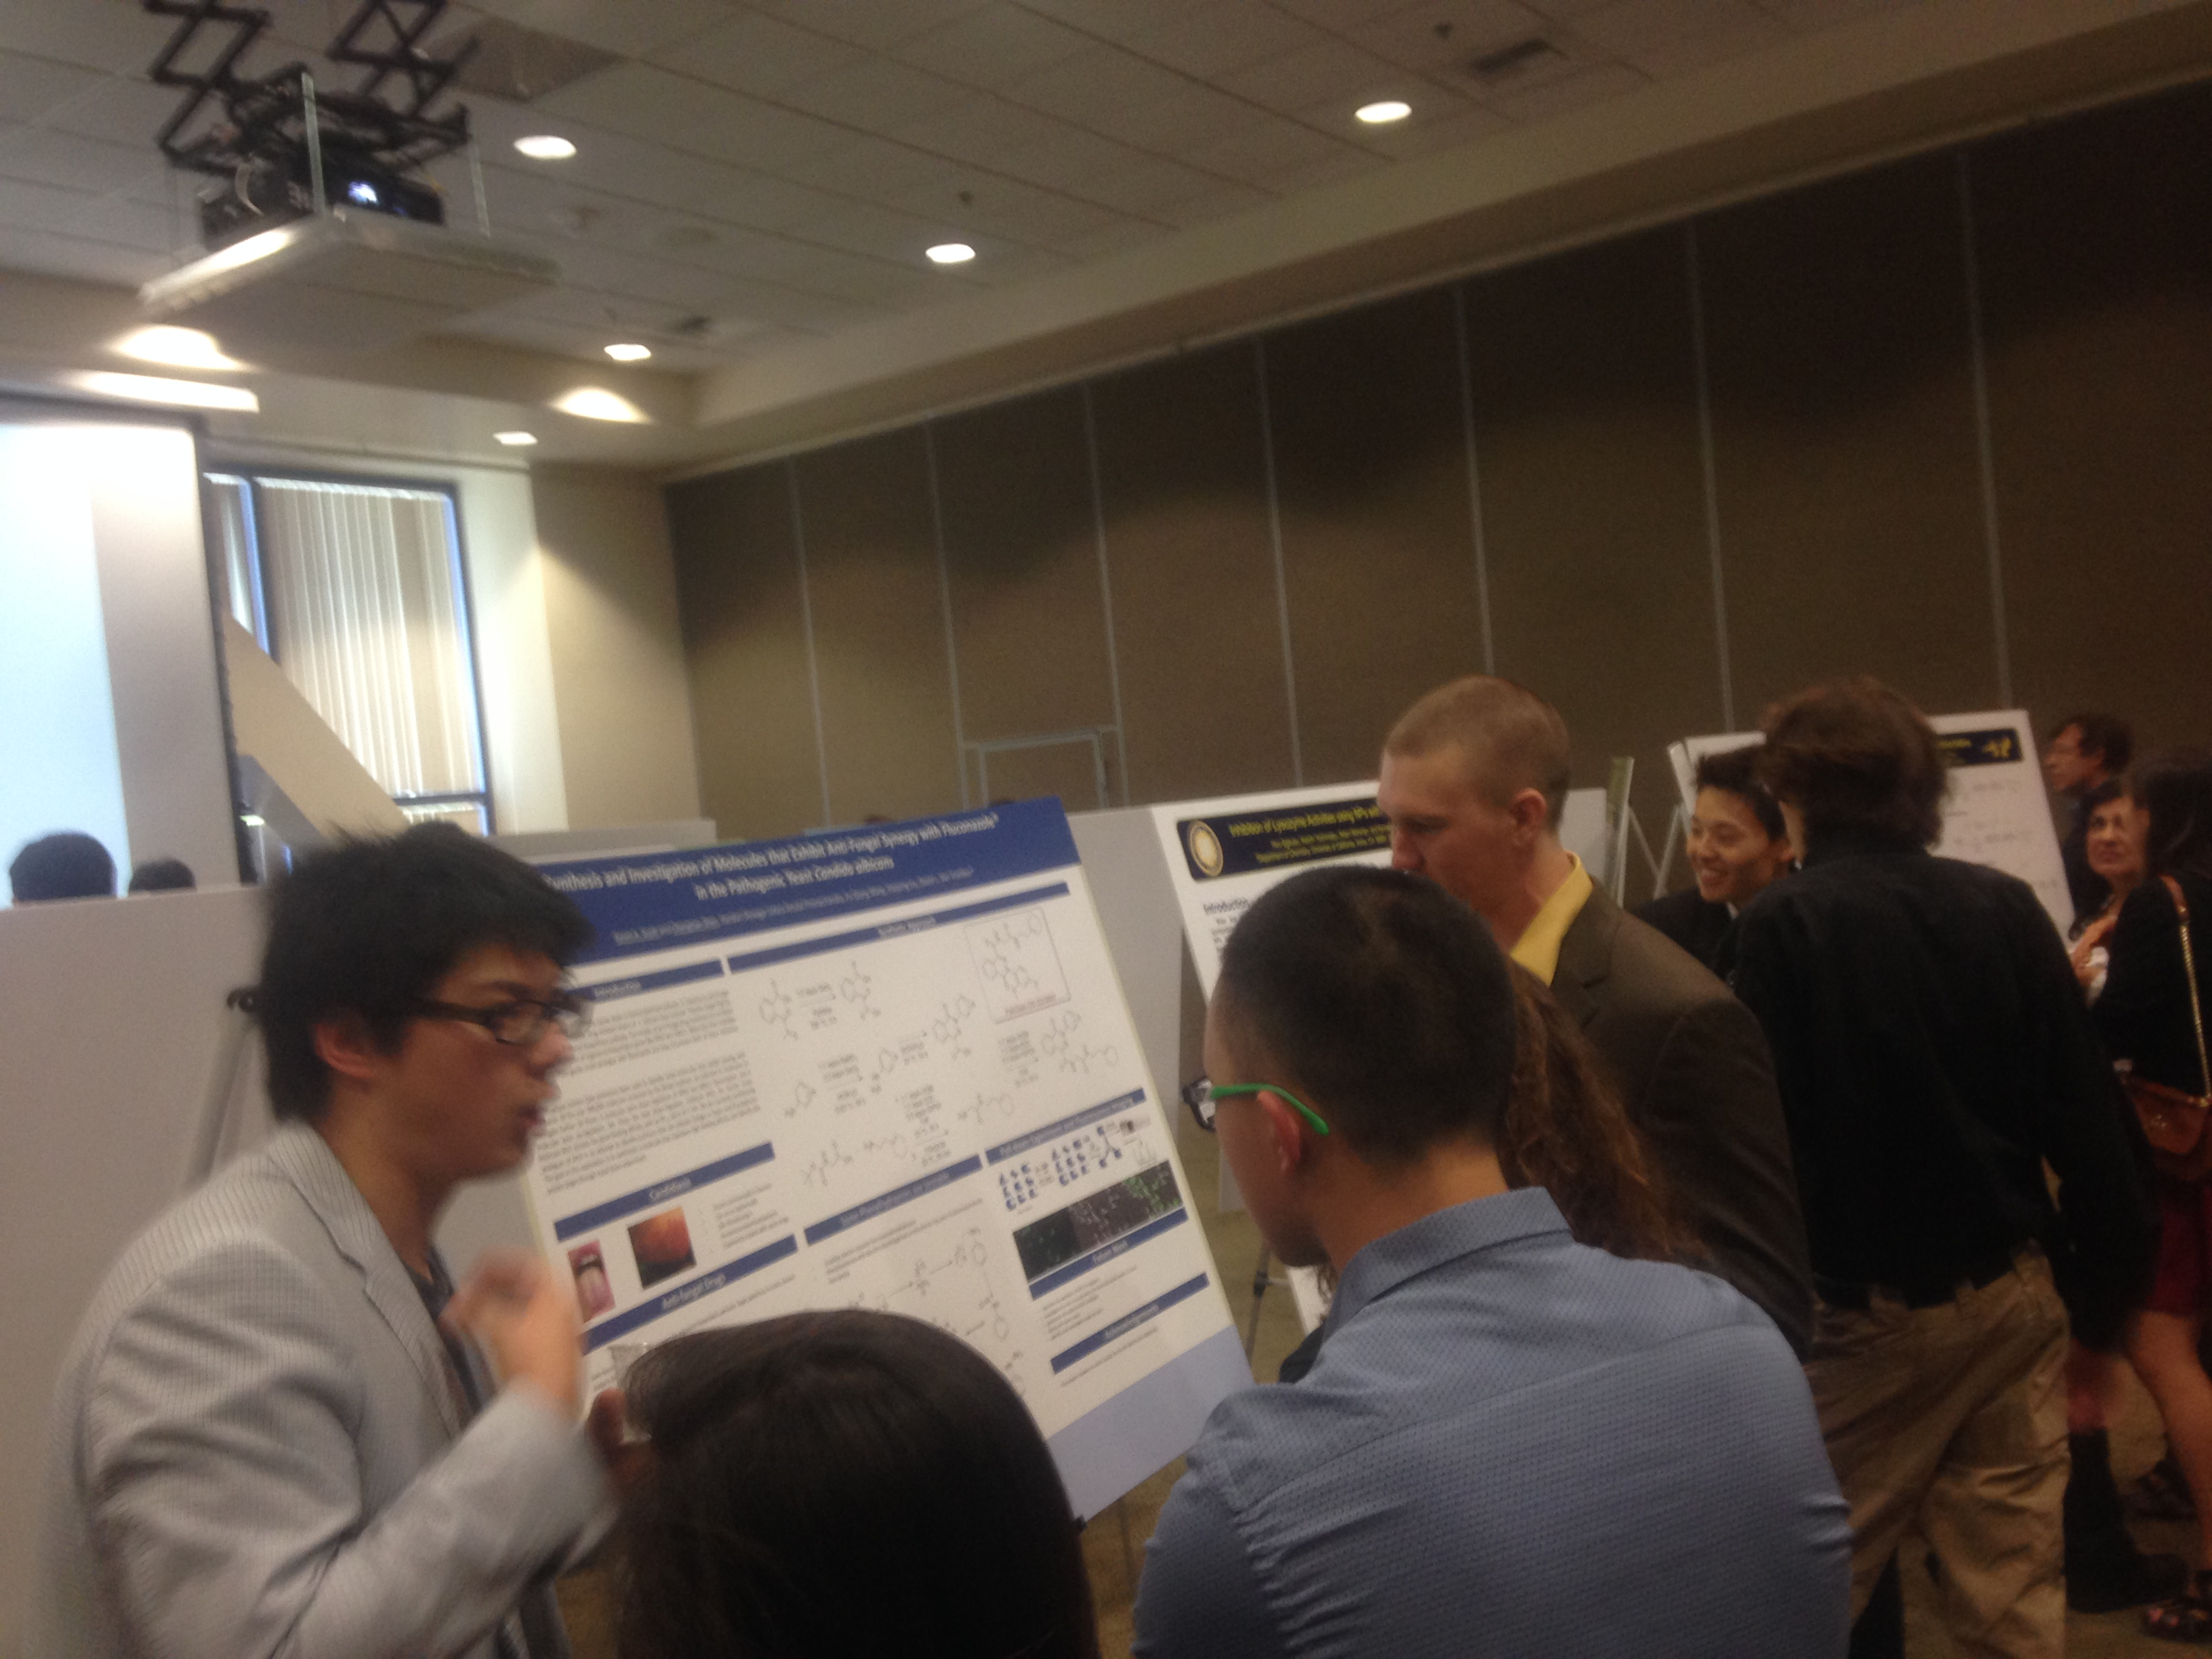 Our Awesome Undergrads Describing their Research to other Students